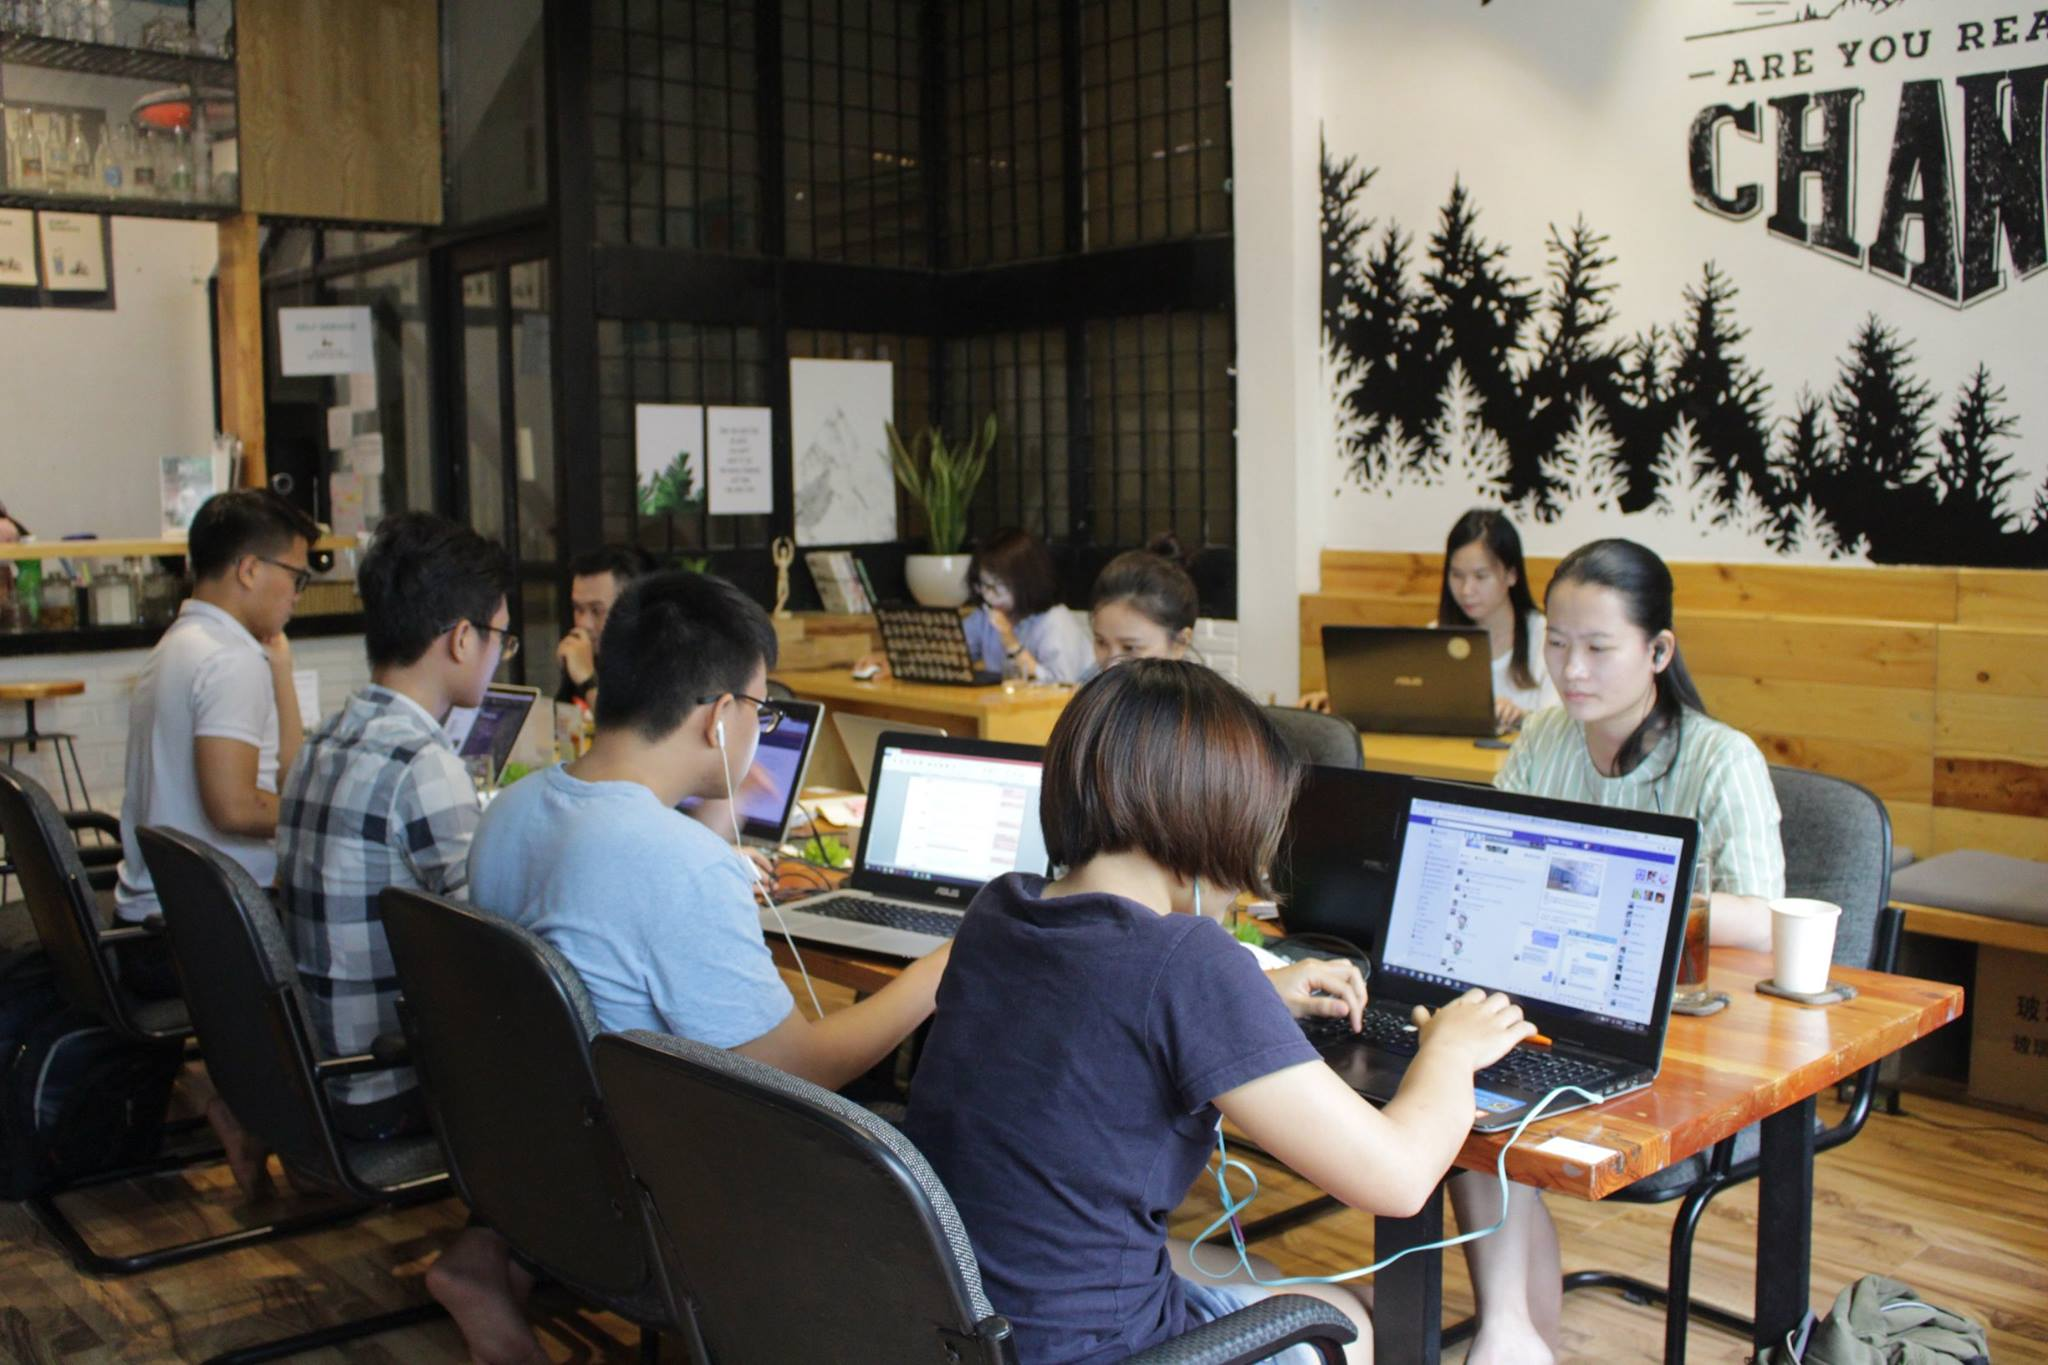 GEEK Hub Workspace and Cafeteria, Ho Chi Minh City